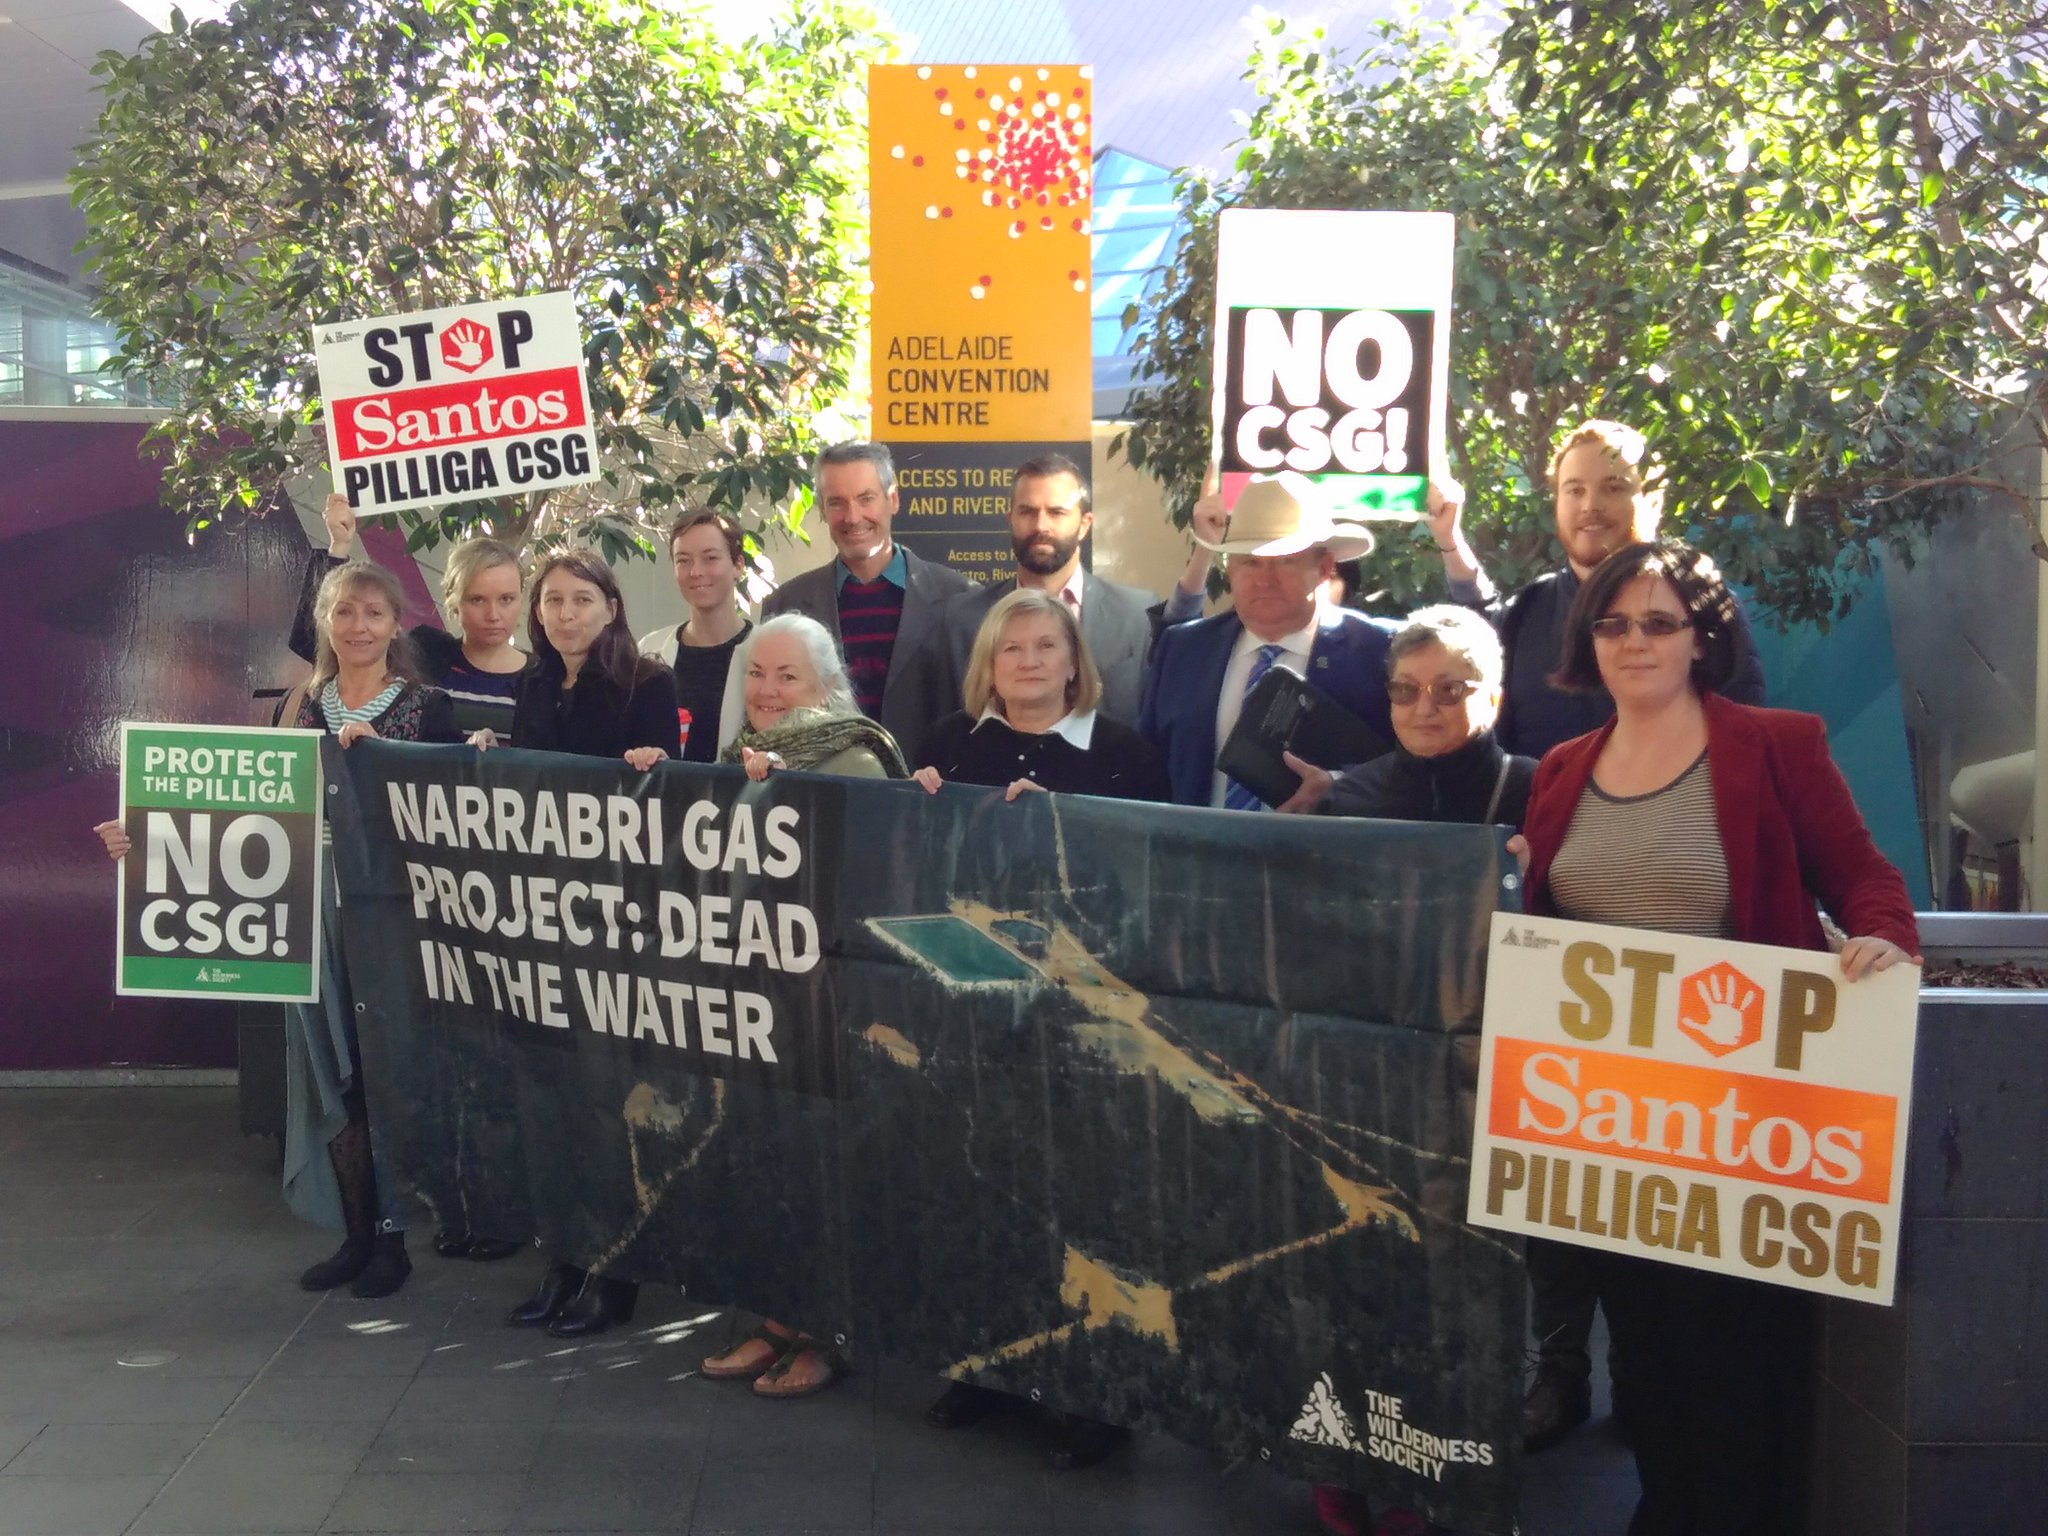 We're outside @SantosLtd AGM in #Adelaide today protesting against #CSG in the #pilliga forest – for our communities, water and safe climate https://t.co/jQ3gQpApf5